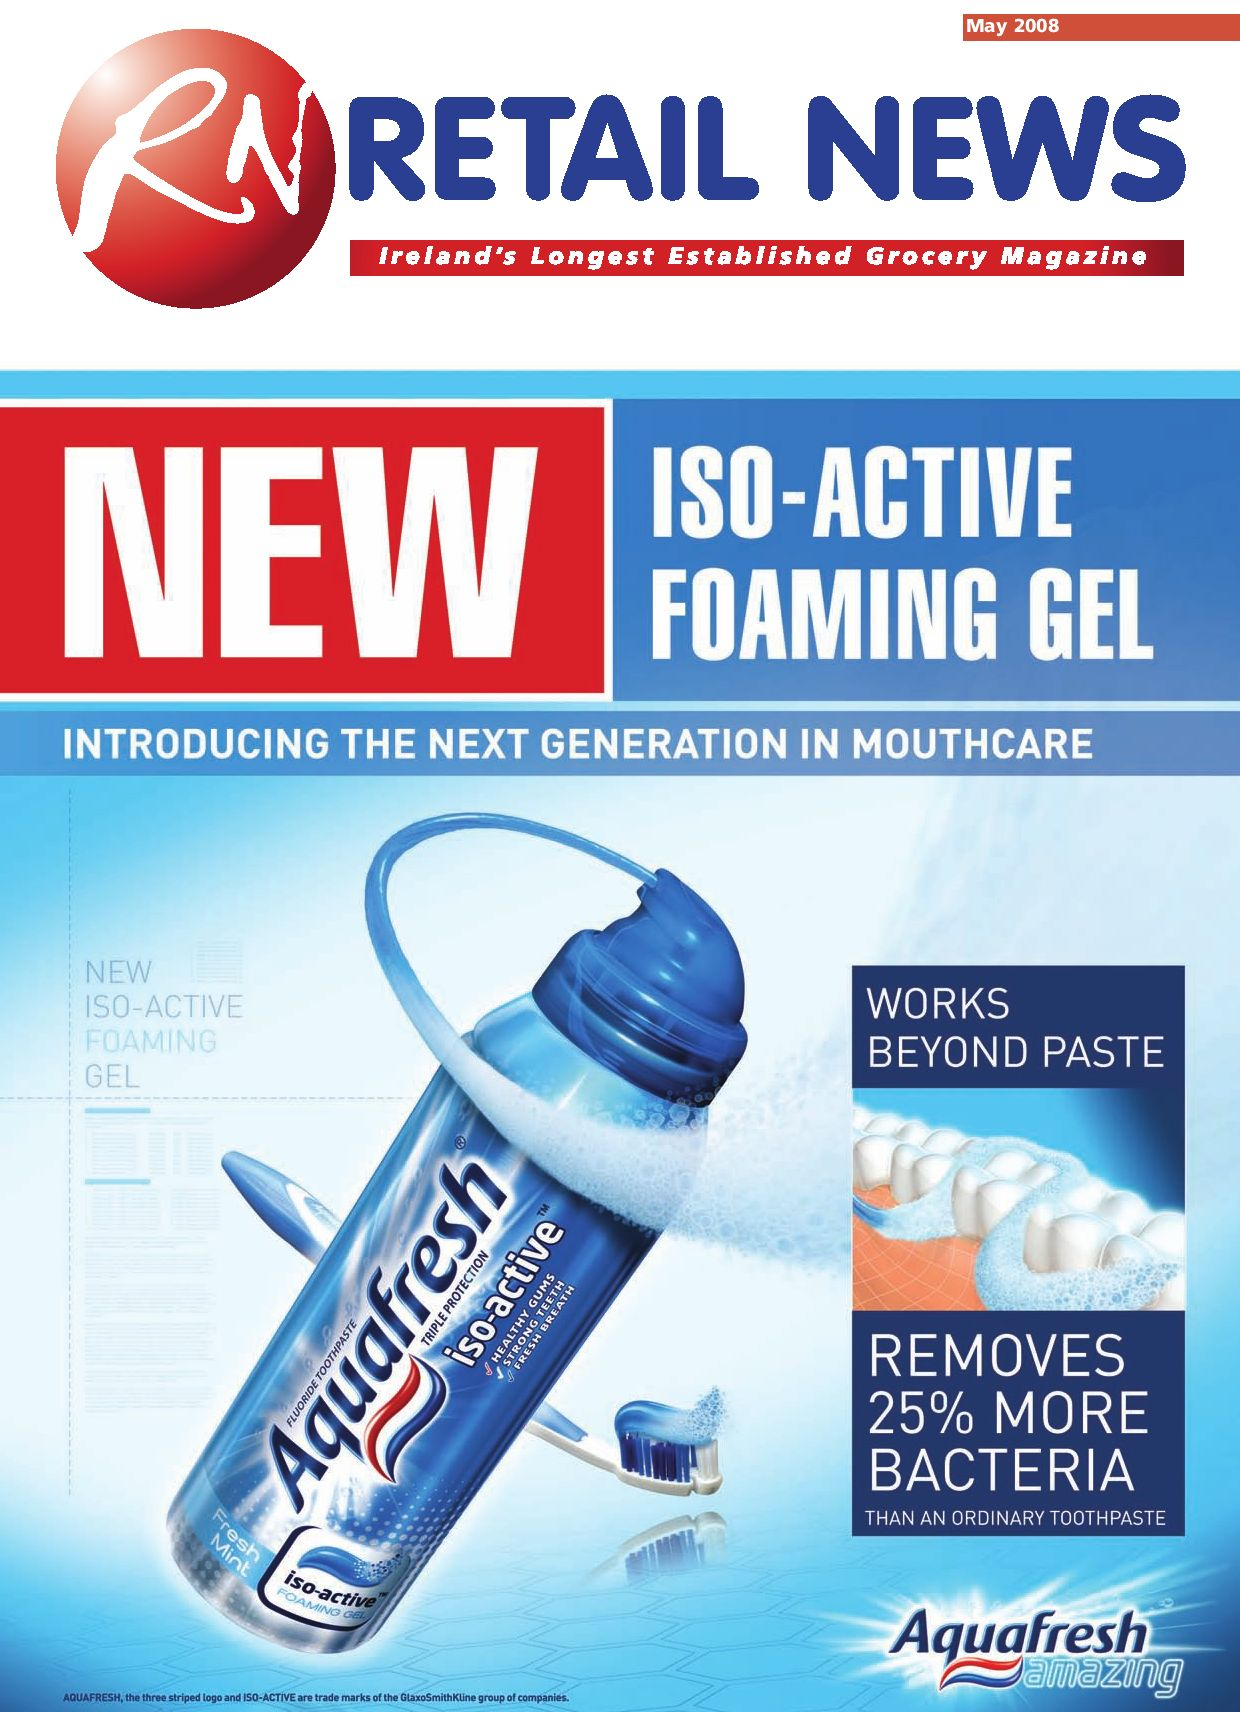 Retail News May 2008 By Issuu 3m Interior Dressing 350 Ml Bottle